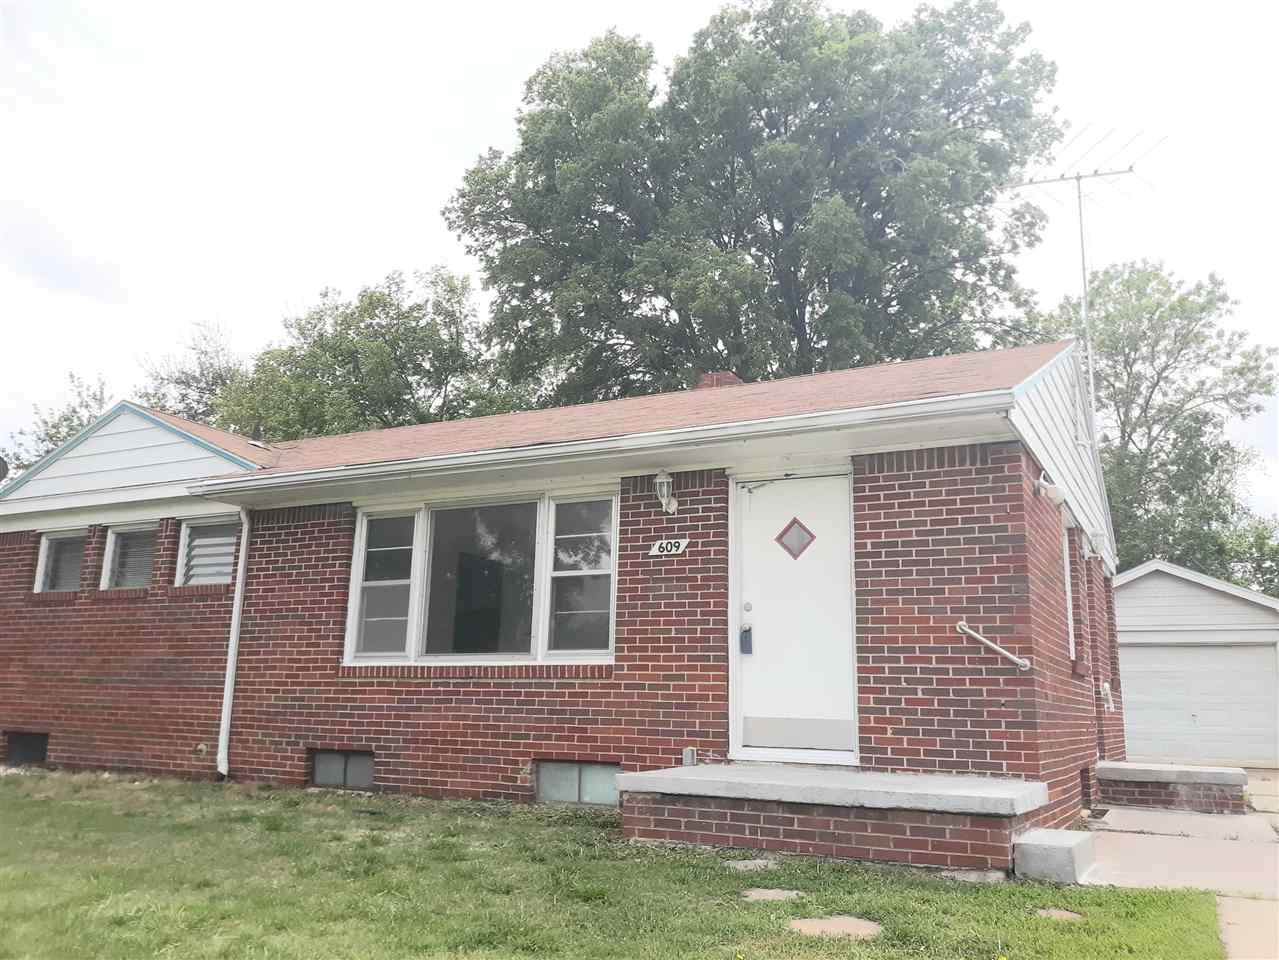 Great brick ranch with detached 1 car garage and full basement with finished room (no egress). Wood floors, kitchen appliances stay, large backyard, and convenient access to Kellogg for easy commute! This home has been a rental and most recently obtained $760.00/month for rent. The water heater was replaced in December 2019. Heat and air are only a few years old. Transferable warranty on the basement I-beams. about 12 years ago the back exterior was re-bricked. Excellent investment property or first time home buyer opportunity! Room sizes and basement finished square footage are estimates.